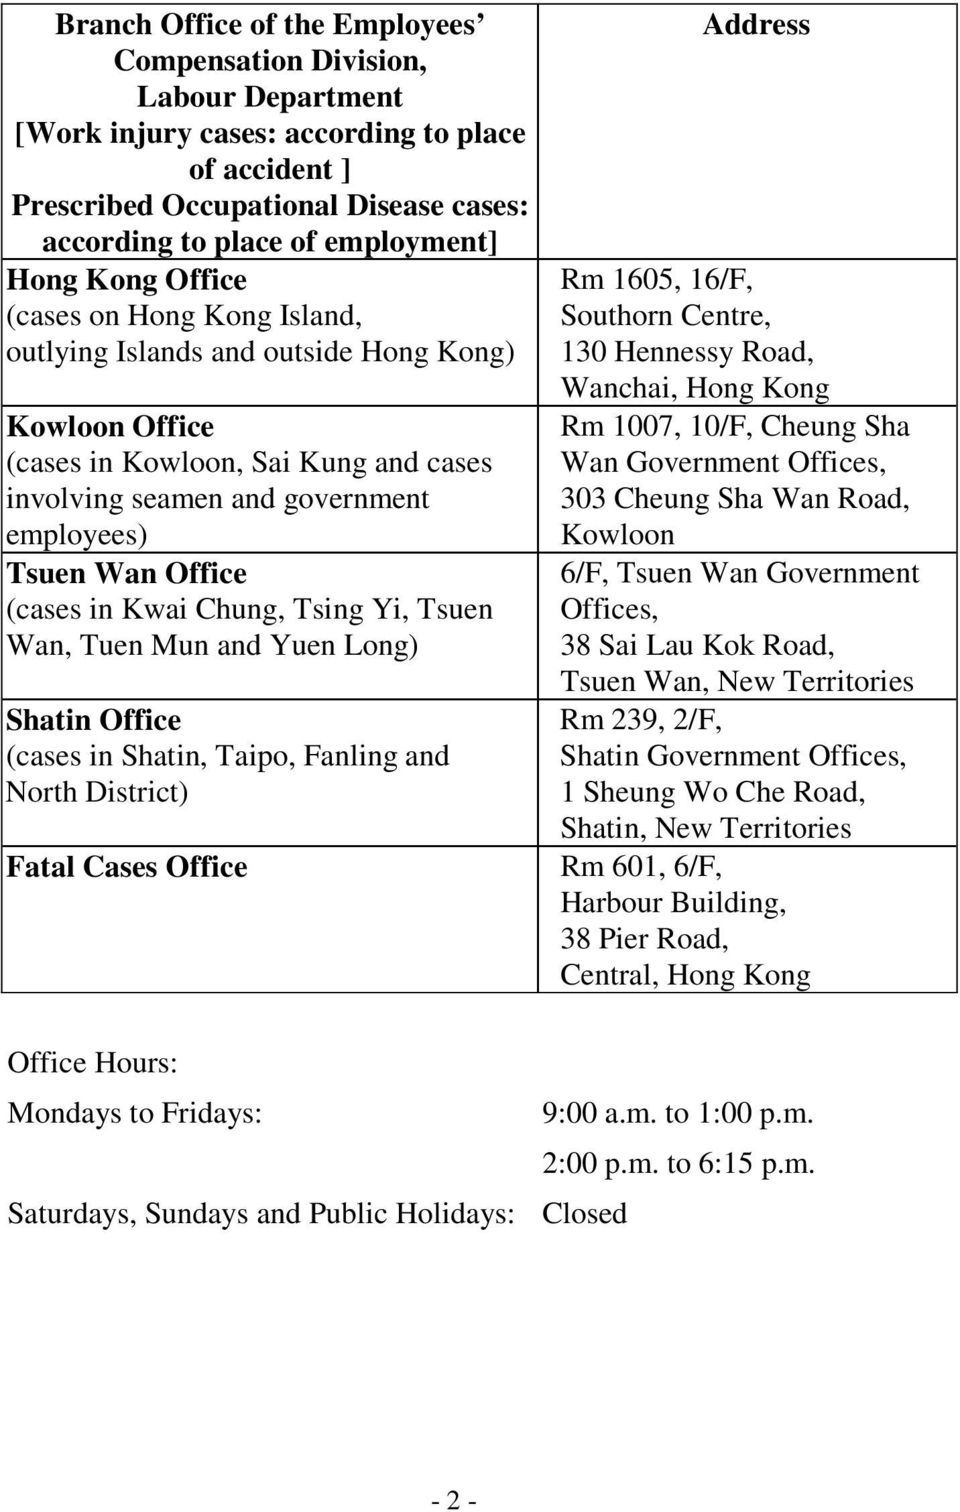 (cases in Kwai Chung, Tsing Yi, Tsuen Wan, Tuen Mun and Yuen Long) Shatin Office (cases in Shatin, Taipo, Fanling and North District) Fatal Cases Office Address Rm 1605, 16/F, Southorn Centre, 130